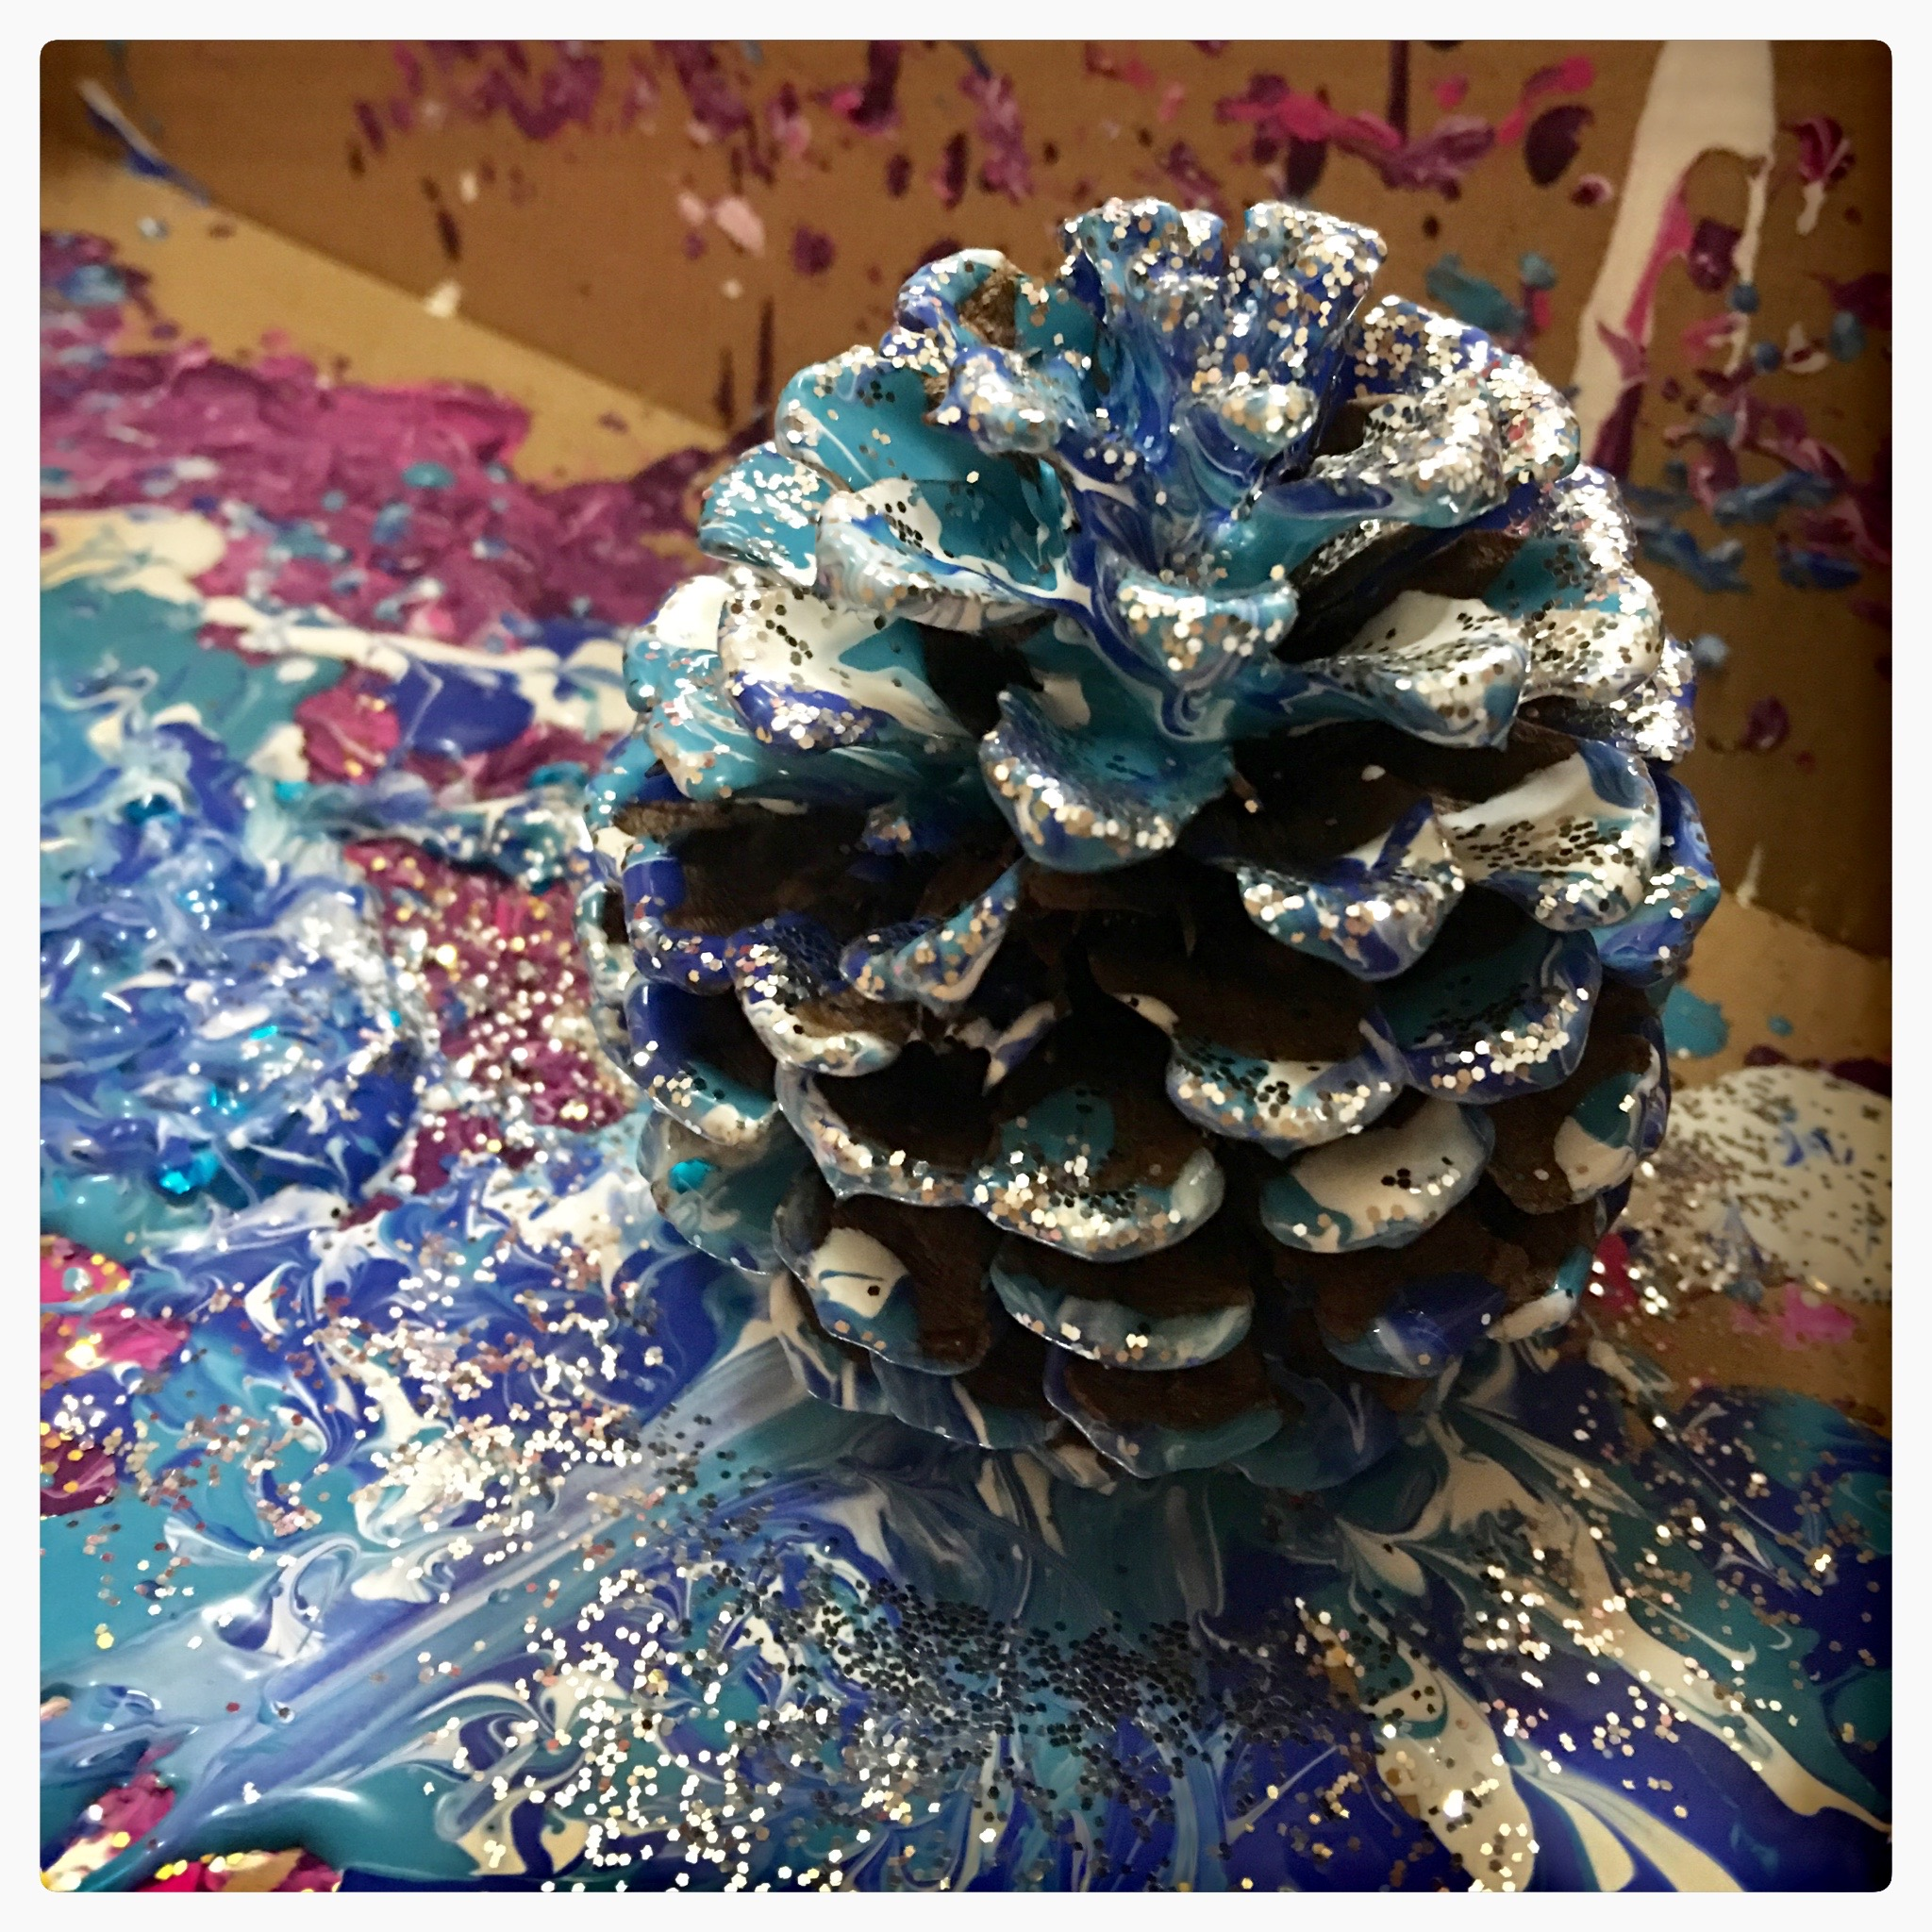 Pine Cone Process art - just use an old shoe box, add some paint, a pine cone from your nature walk, and maybe some glitter. Close the lid, and Shake!